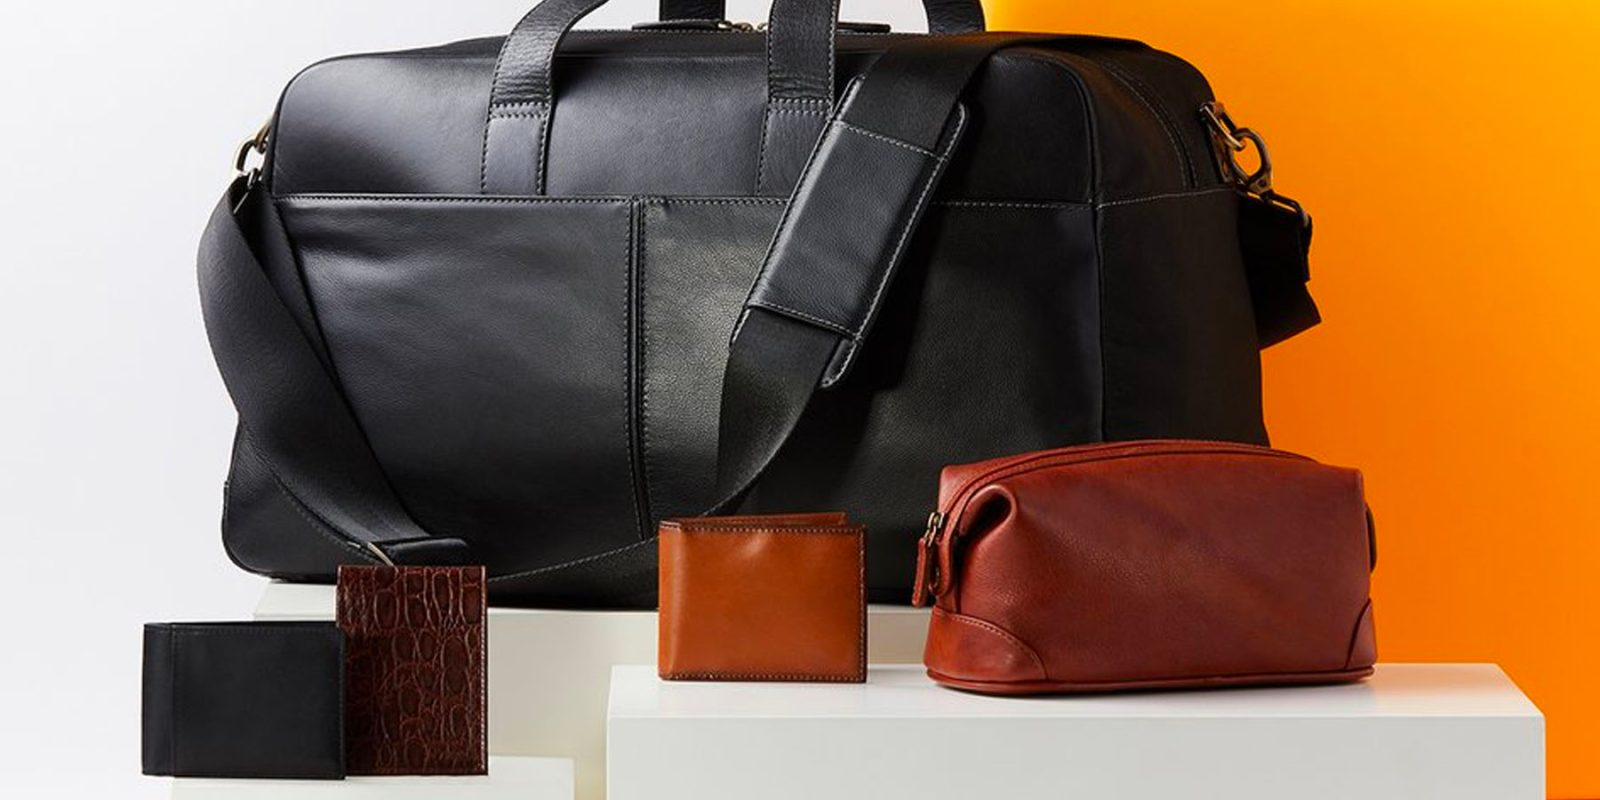 f7d7cbcc04f TUMI, Cole Haan & Ted Baker from $20 in Hautelook's Men's Leather  Accessories Sale